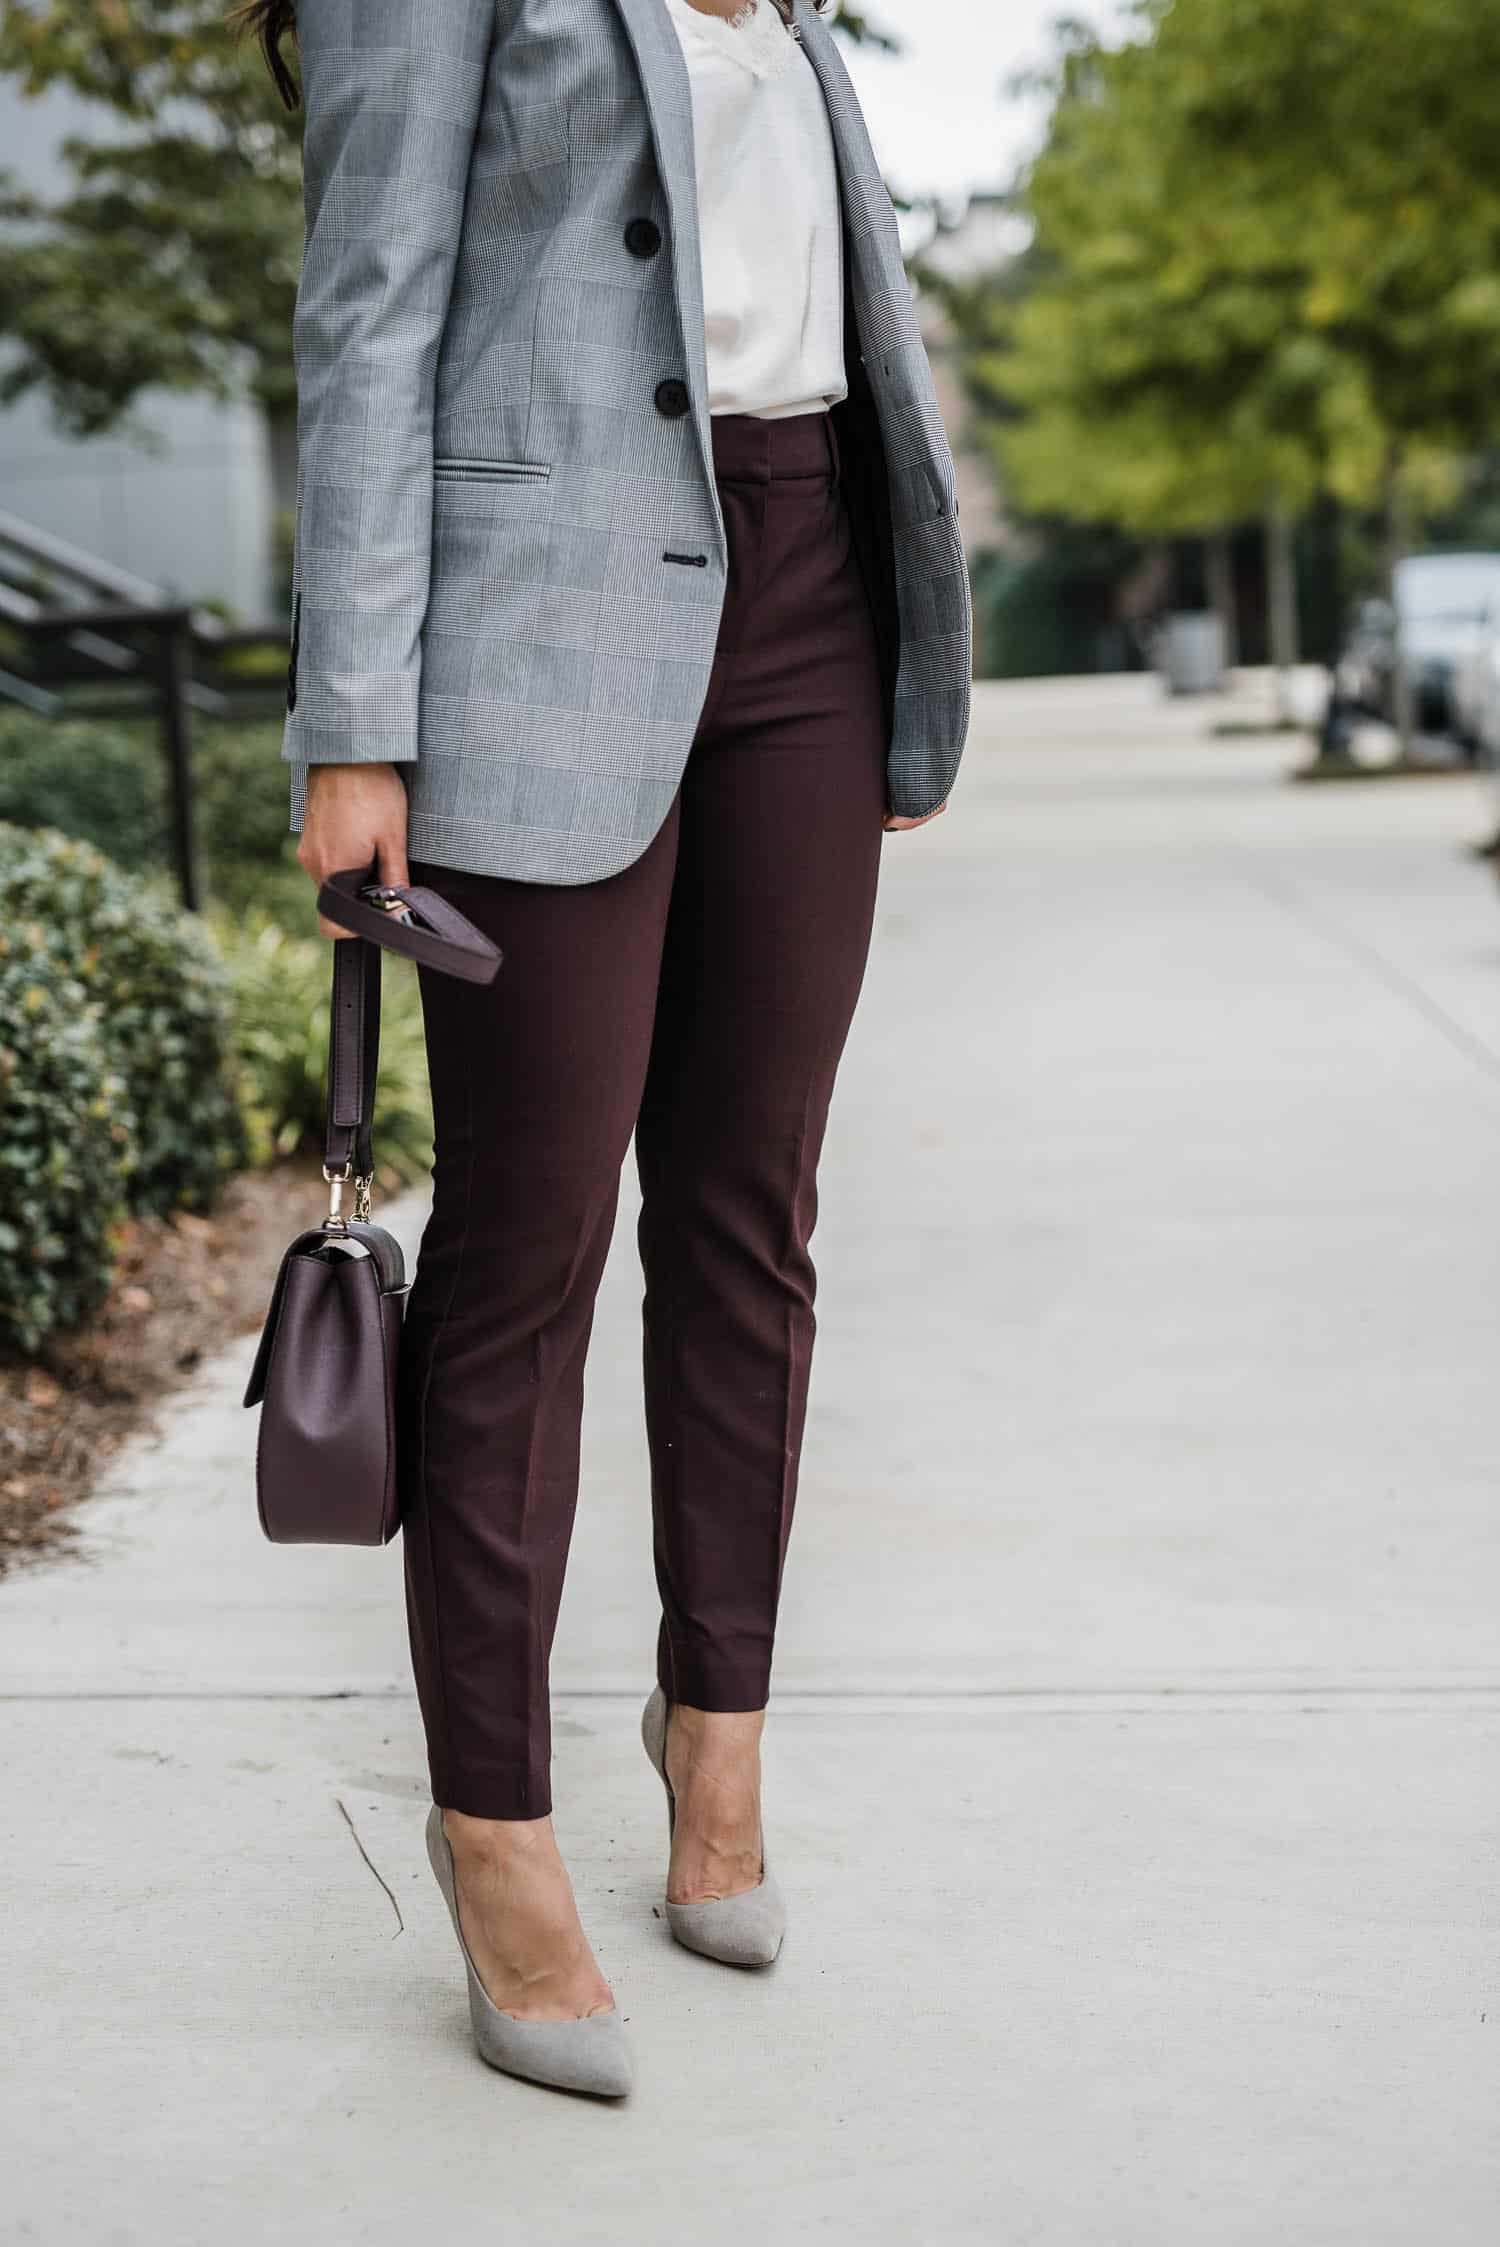 Plaid Boyfriend Blazer And Burgundy Pants